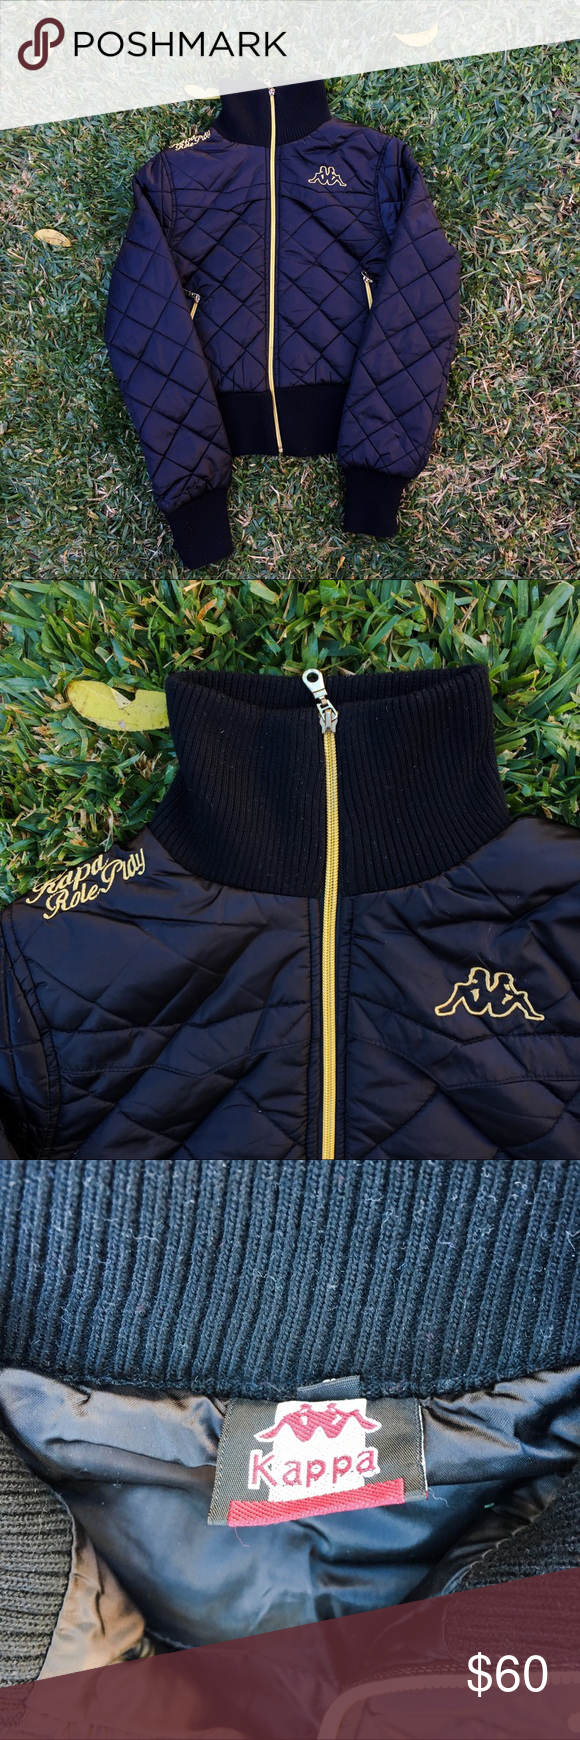 Vintage Kappa Bomber Jacket This Jacket Is In Great Condition Kappa Jackets Coats Puffers Bomber Jacket Jackets Women Shopping [ 1740 x 580 Pixel ]